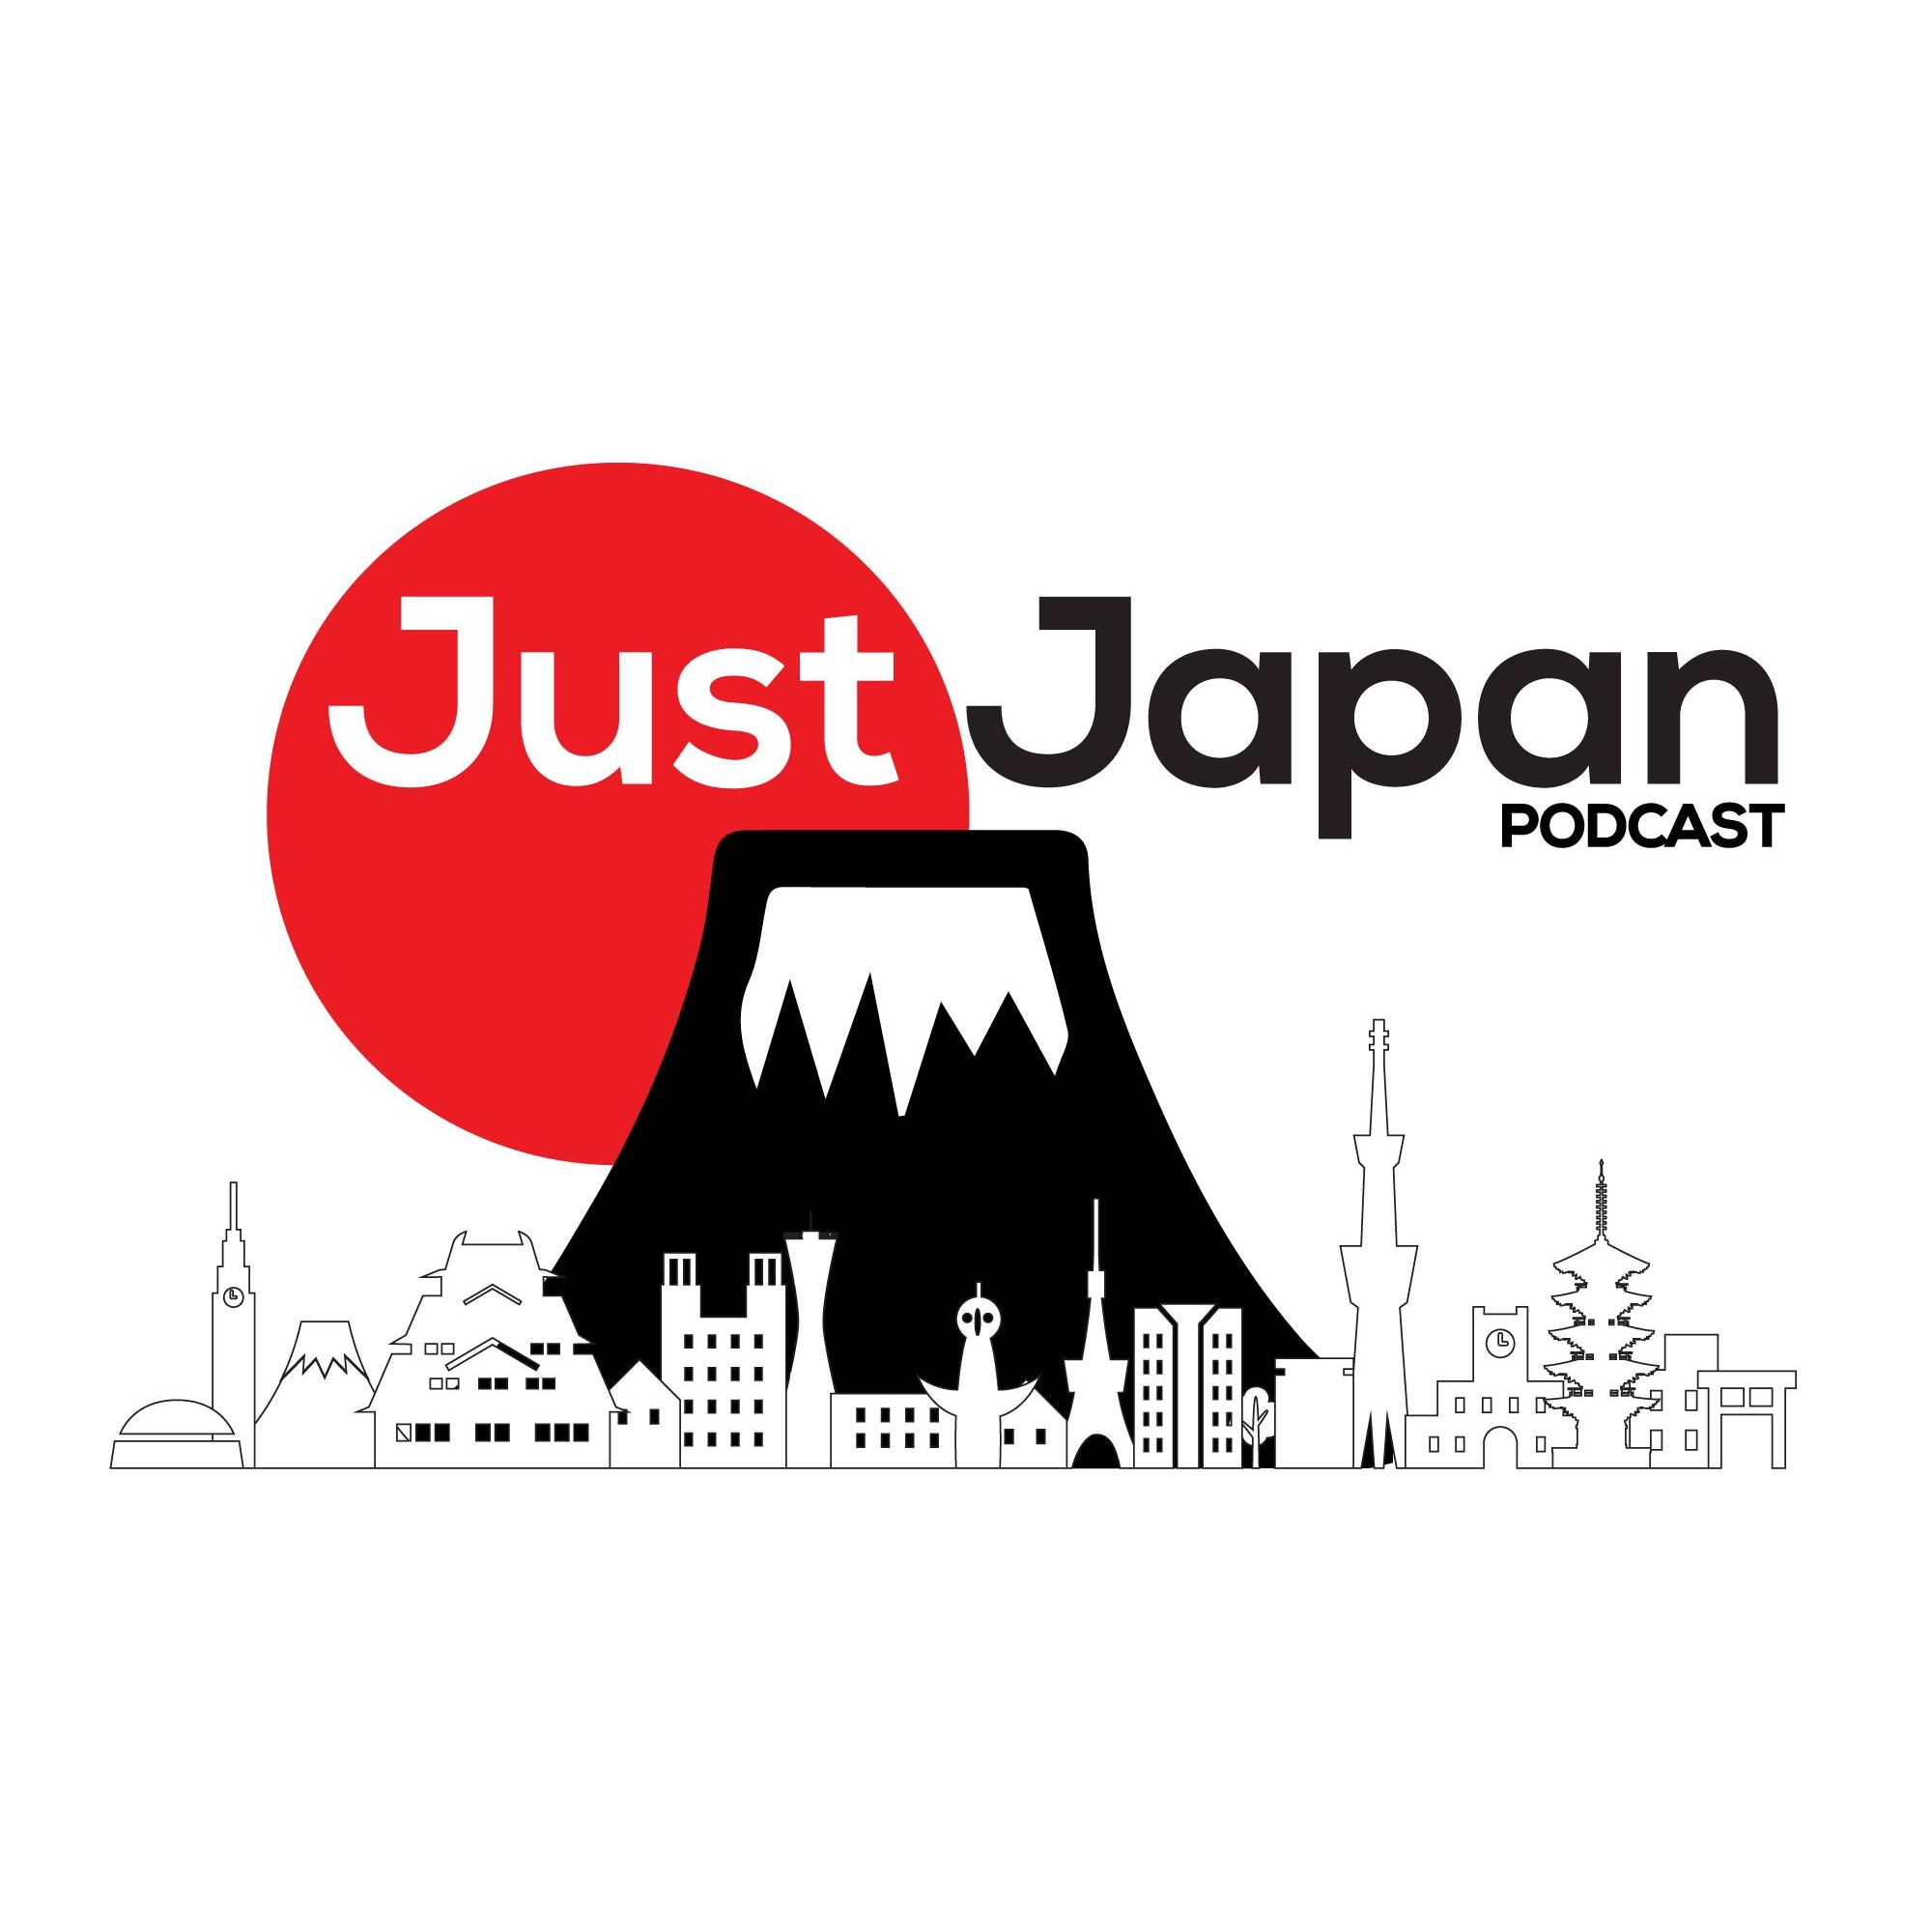 Just Japan Podcast 195 - Impossible to Imagine show art